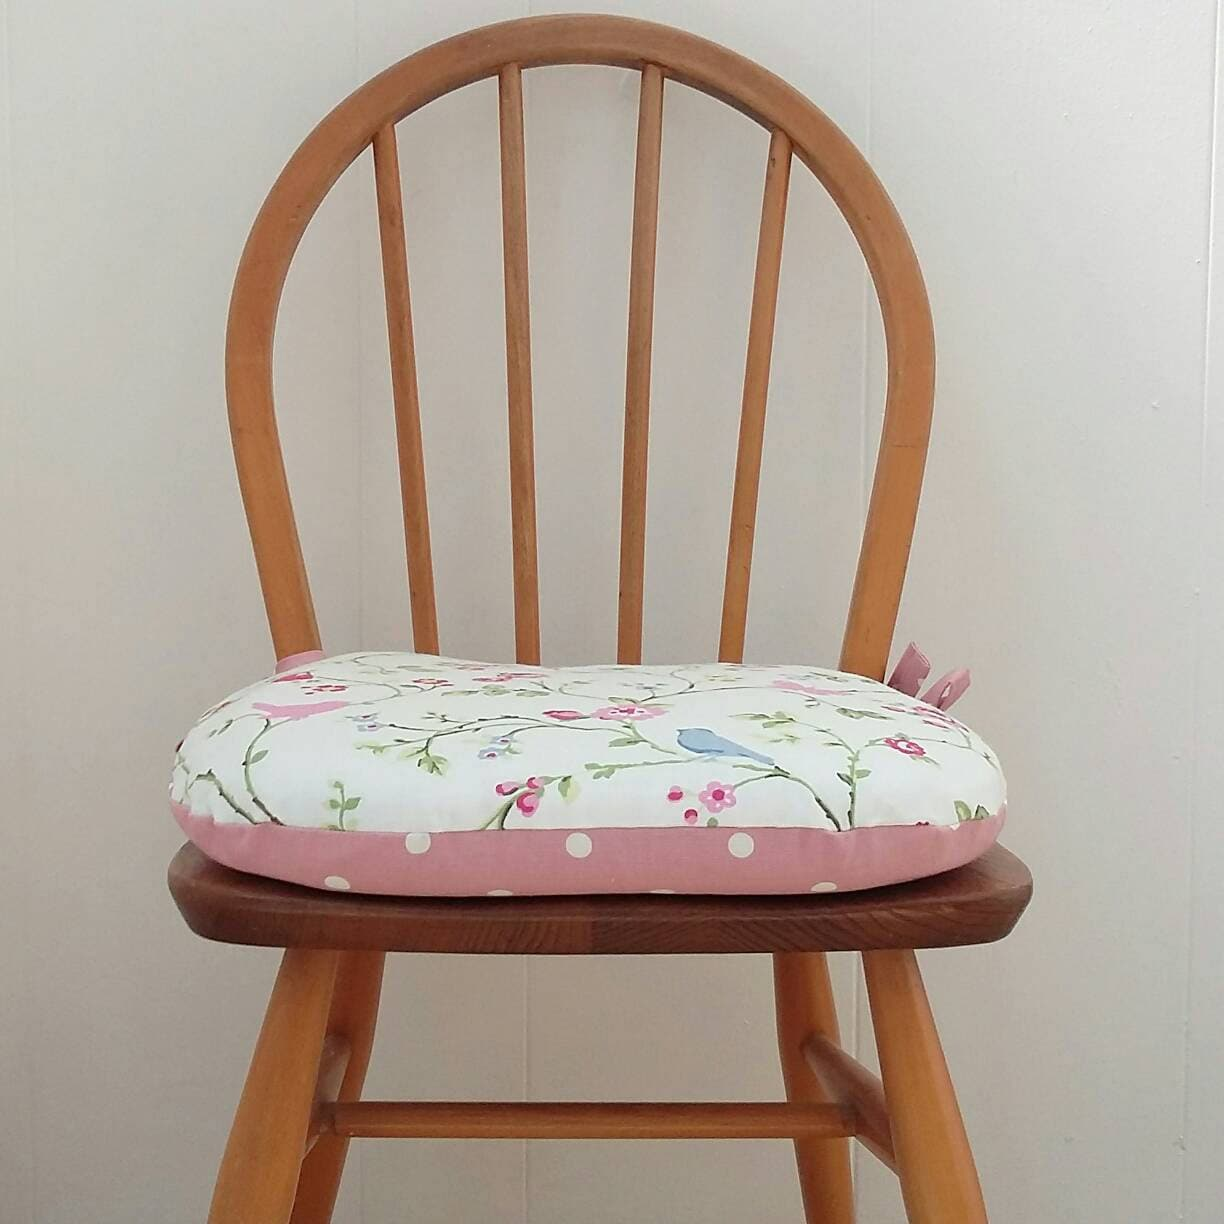 Chair Cushion Dining Seat Pads tie-on cushion kitchen | Etsy